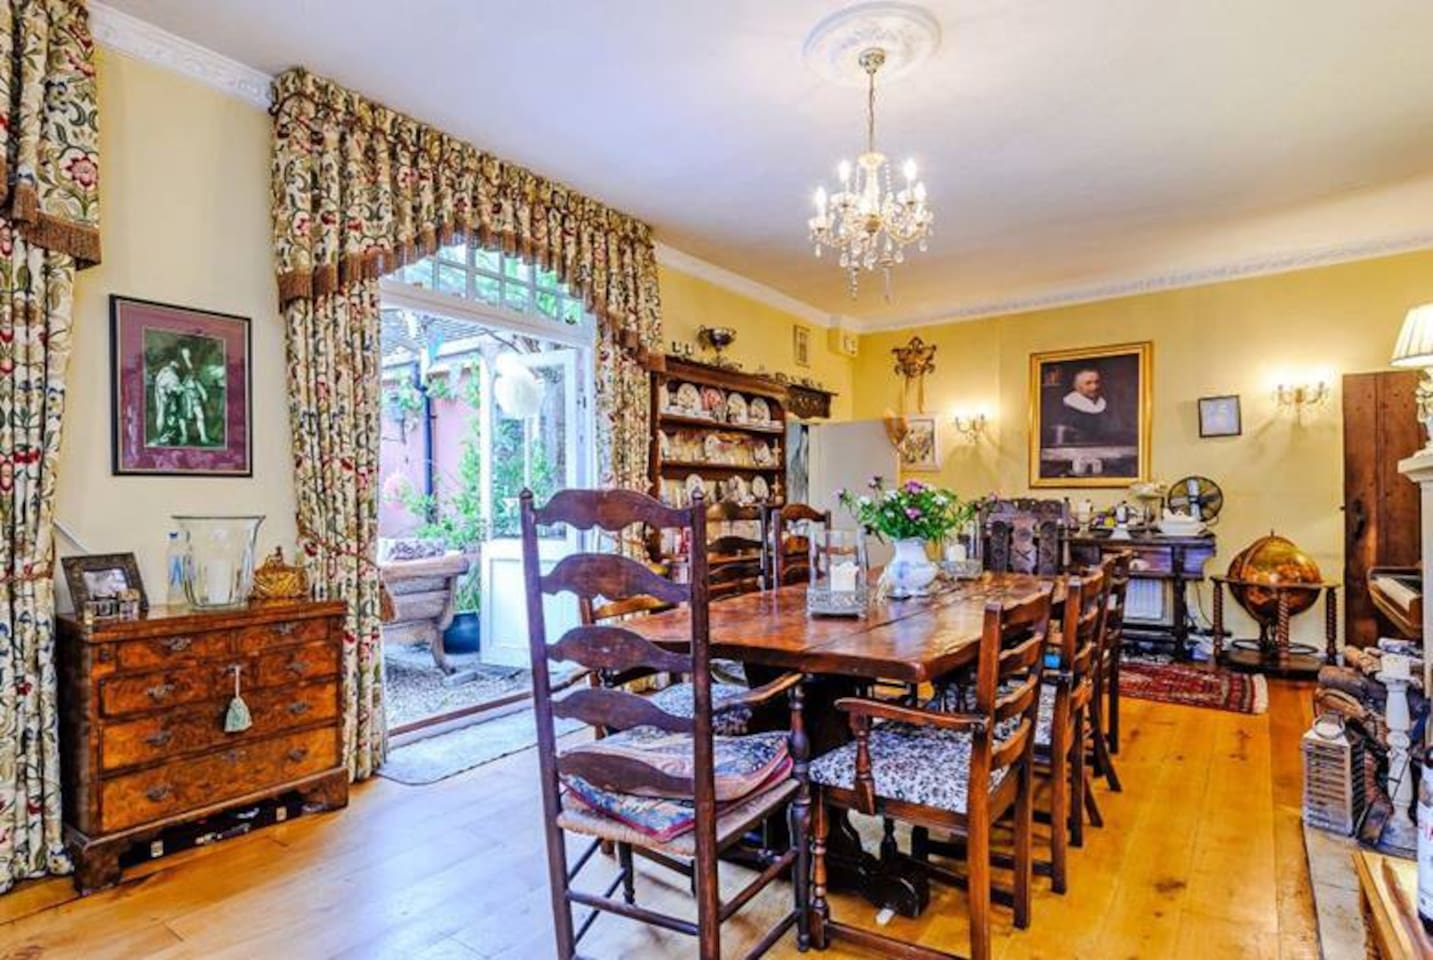 The Dining Room (where Guests take breakfast)